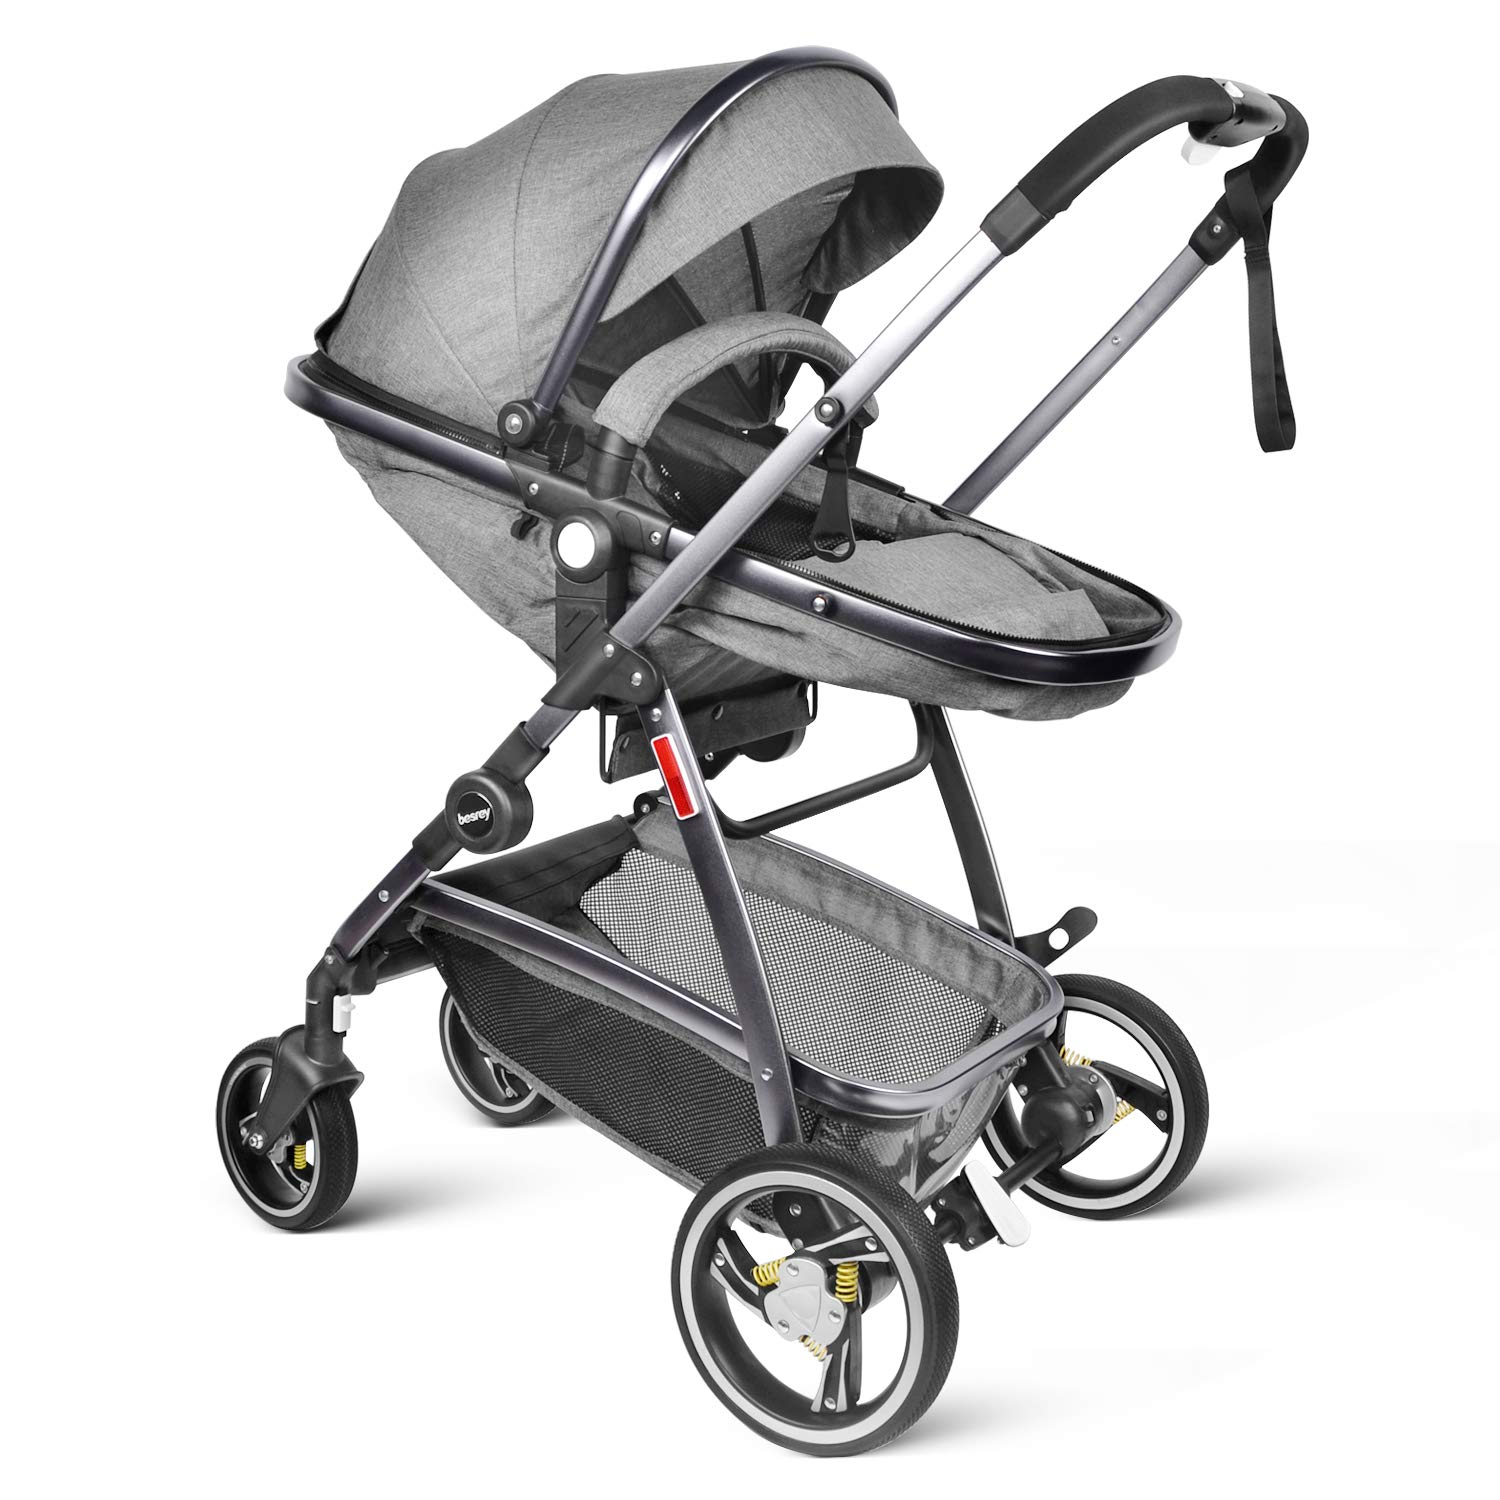 besrey Baby Stroller 2 in 1 Pram Baby Carriage with Convertible Reversible Bassinet & Shock Absorber for Infant Newborn Comfortable to Sleep in - Gray